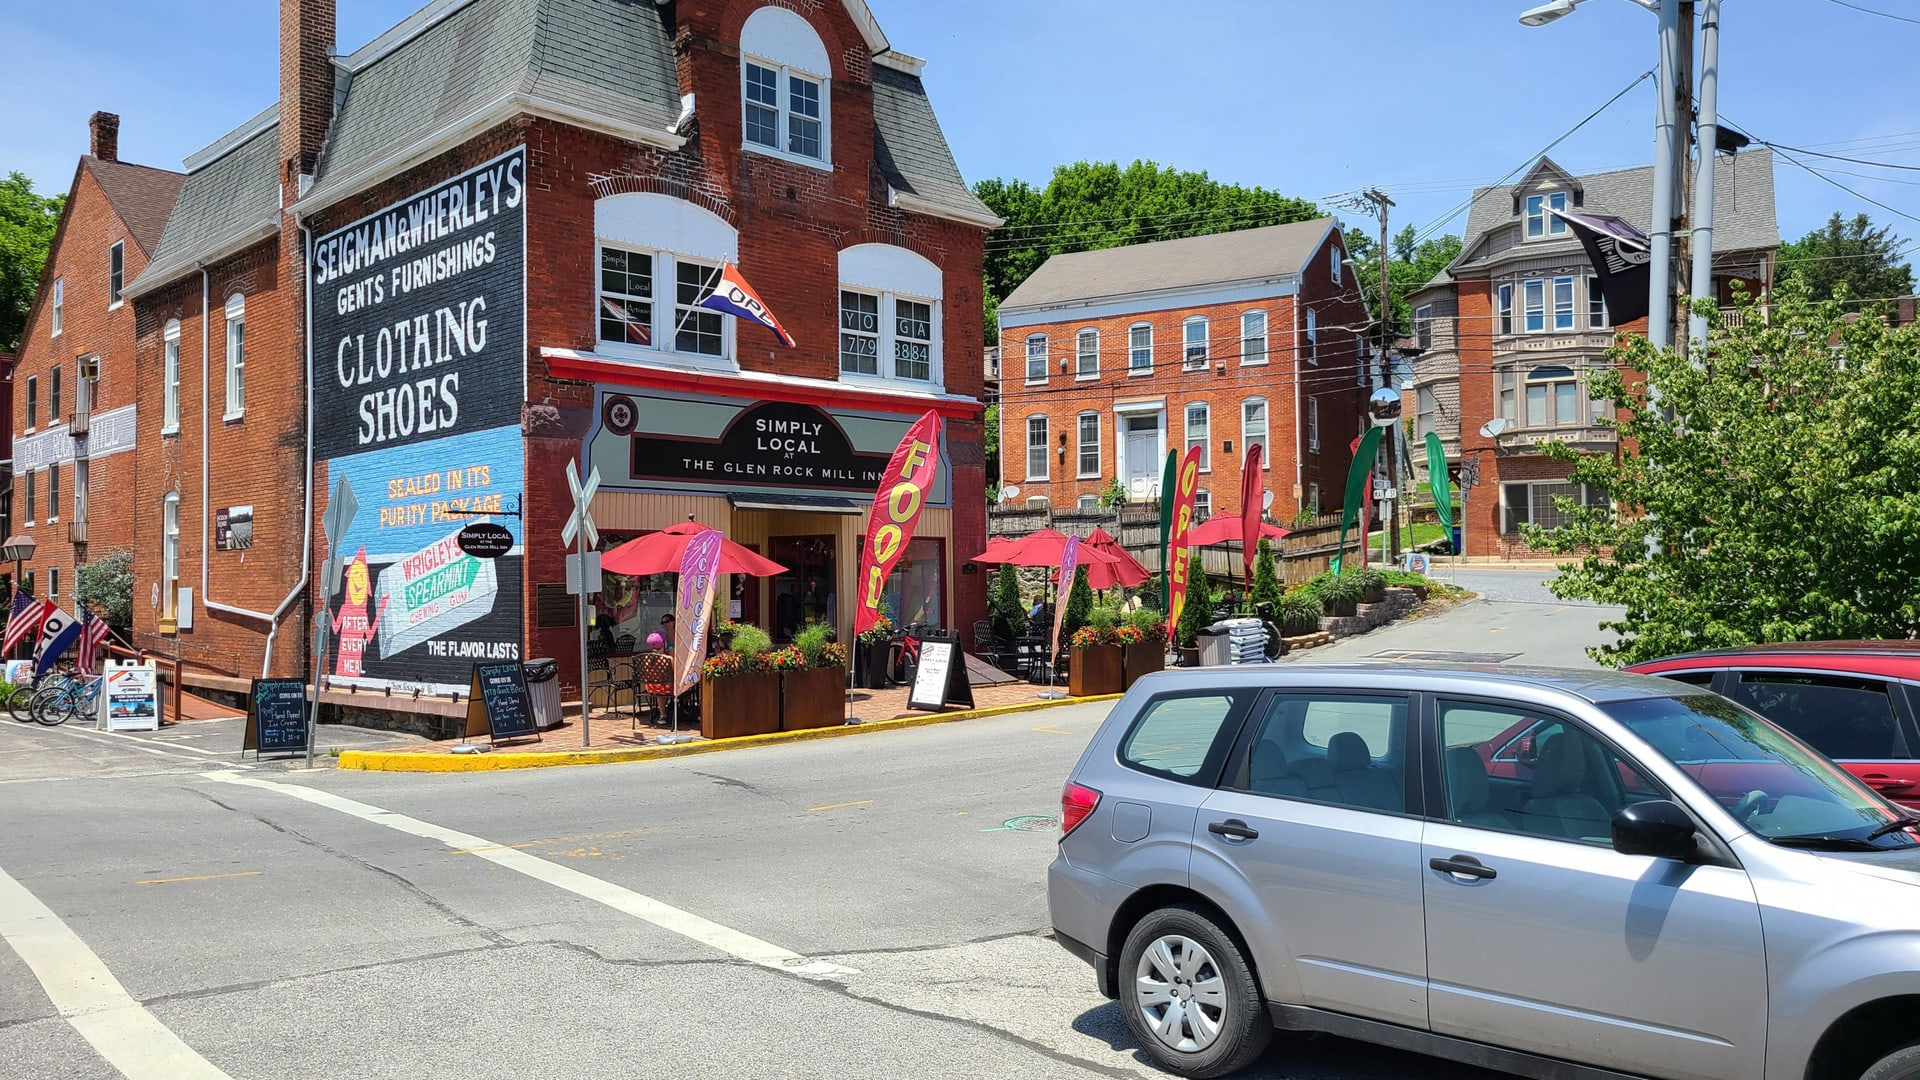 The Glen Rock Mill Inn sits on a street corner. Tables and umbrellas line the sidewalk. On the side is an old mural for Wrigleys Gum.